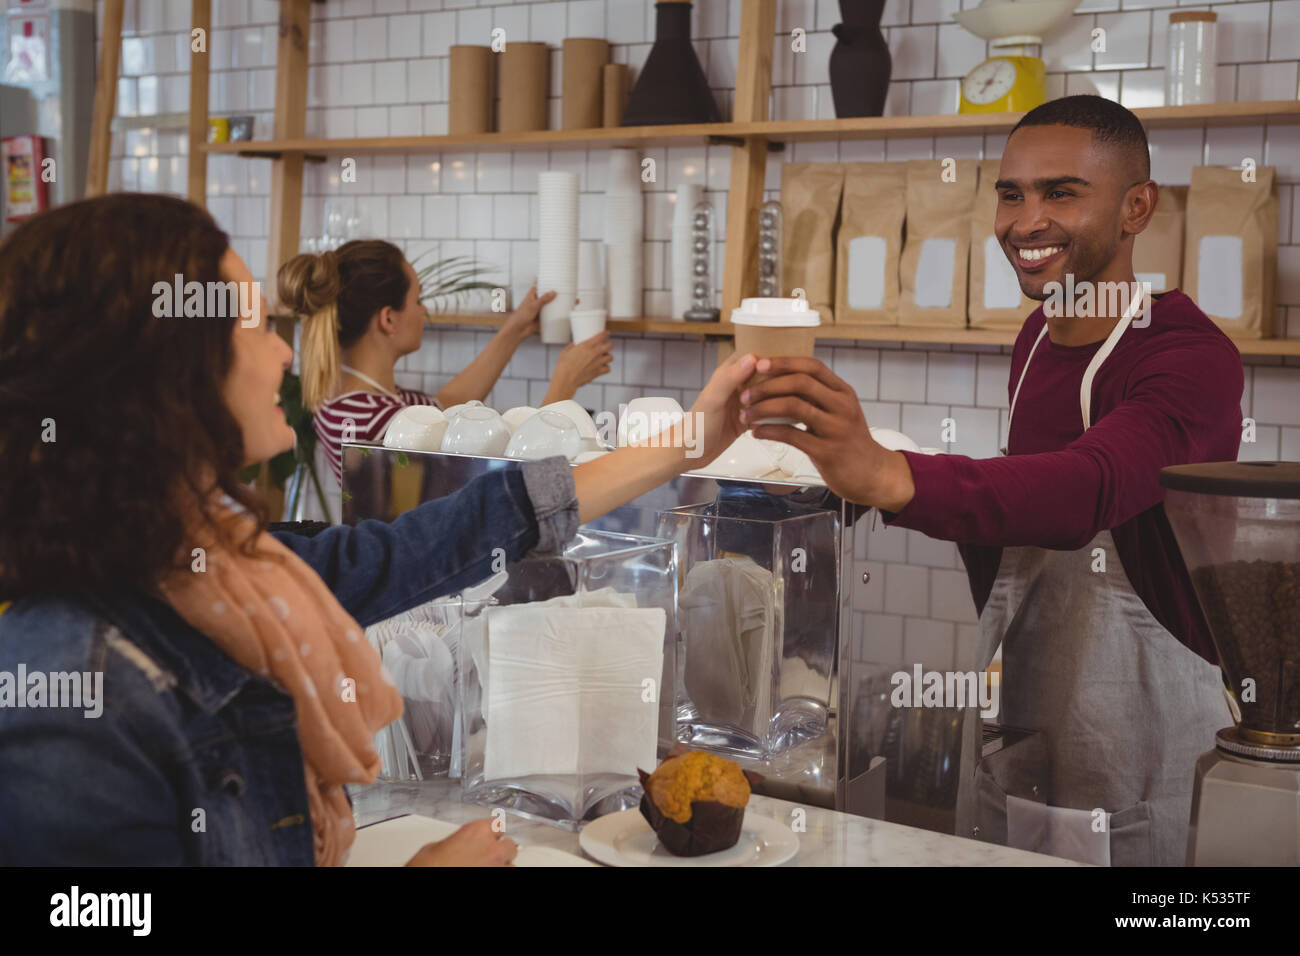 Smiling owner serving coffee to woman at cafe - Stock Image